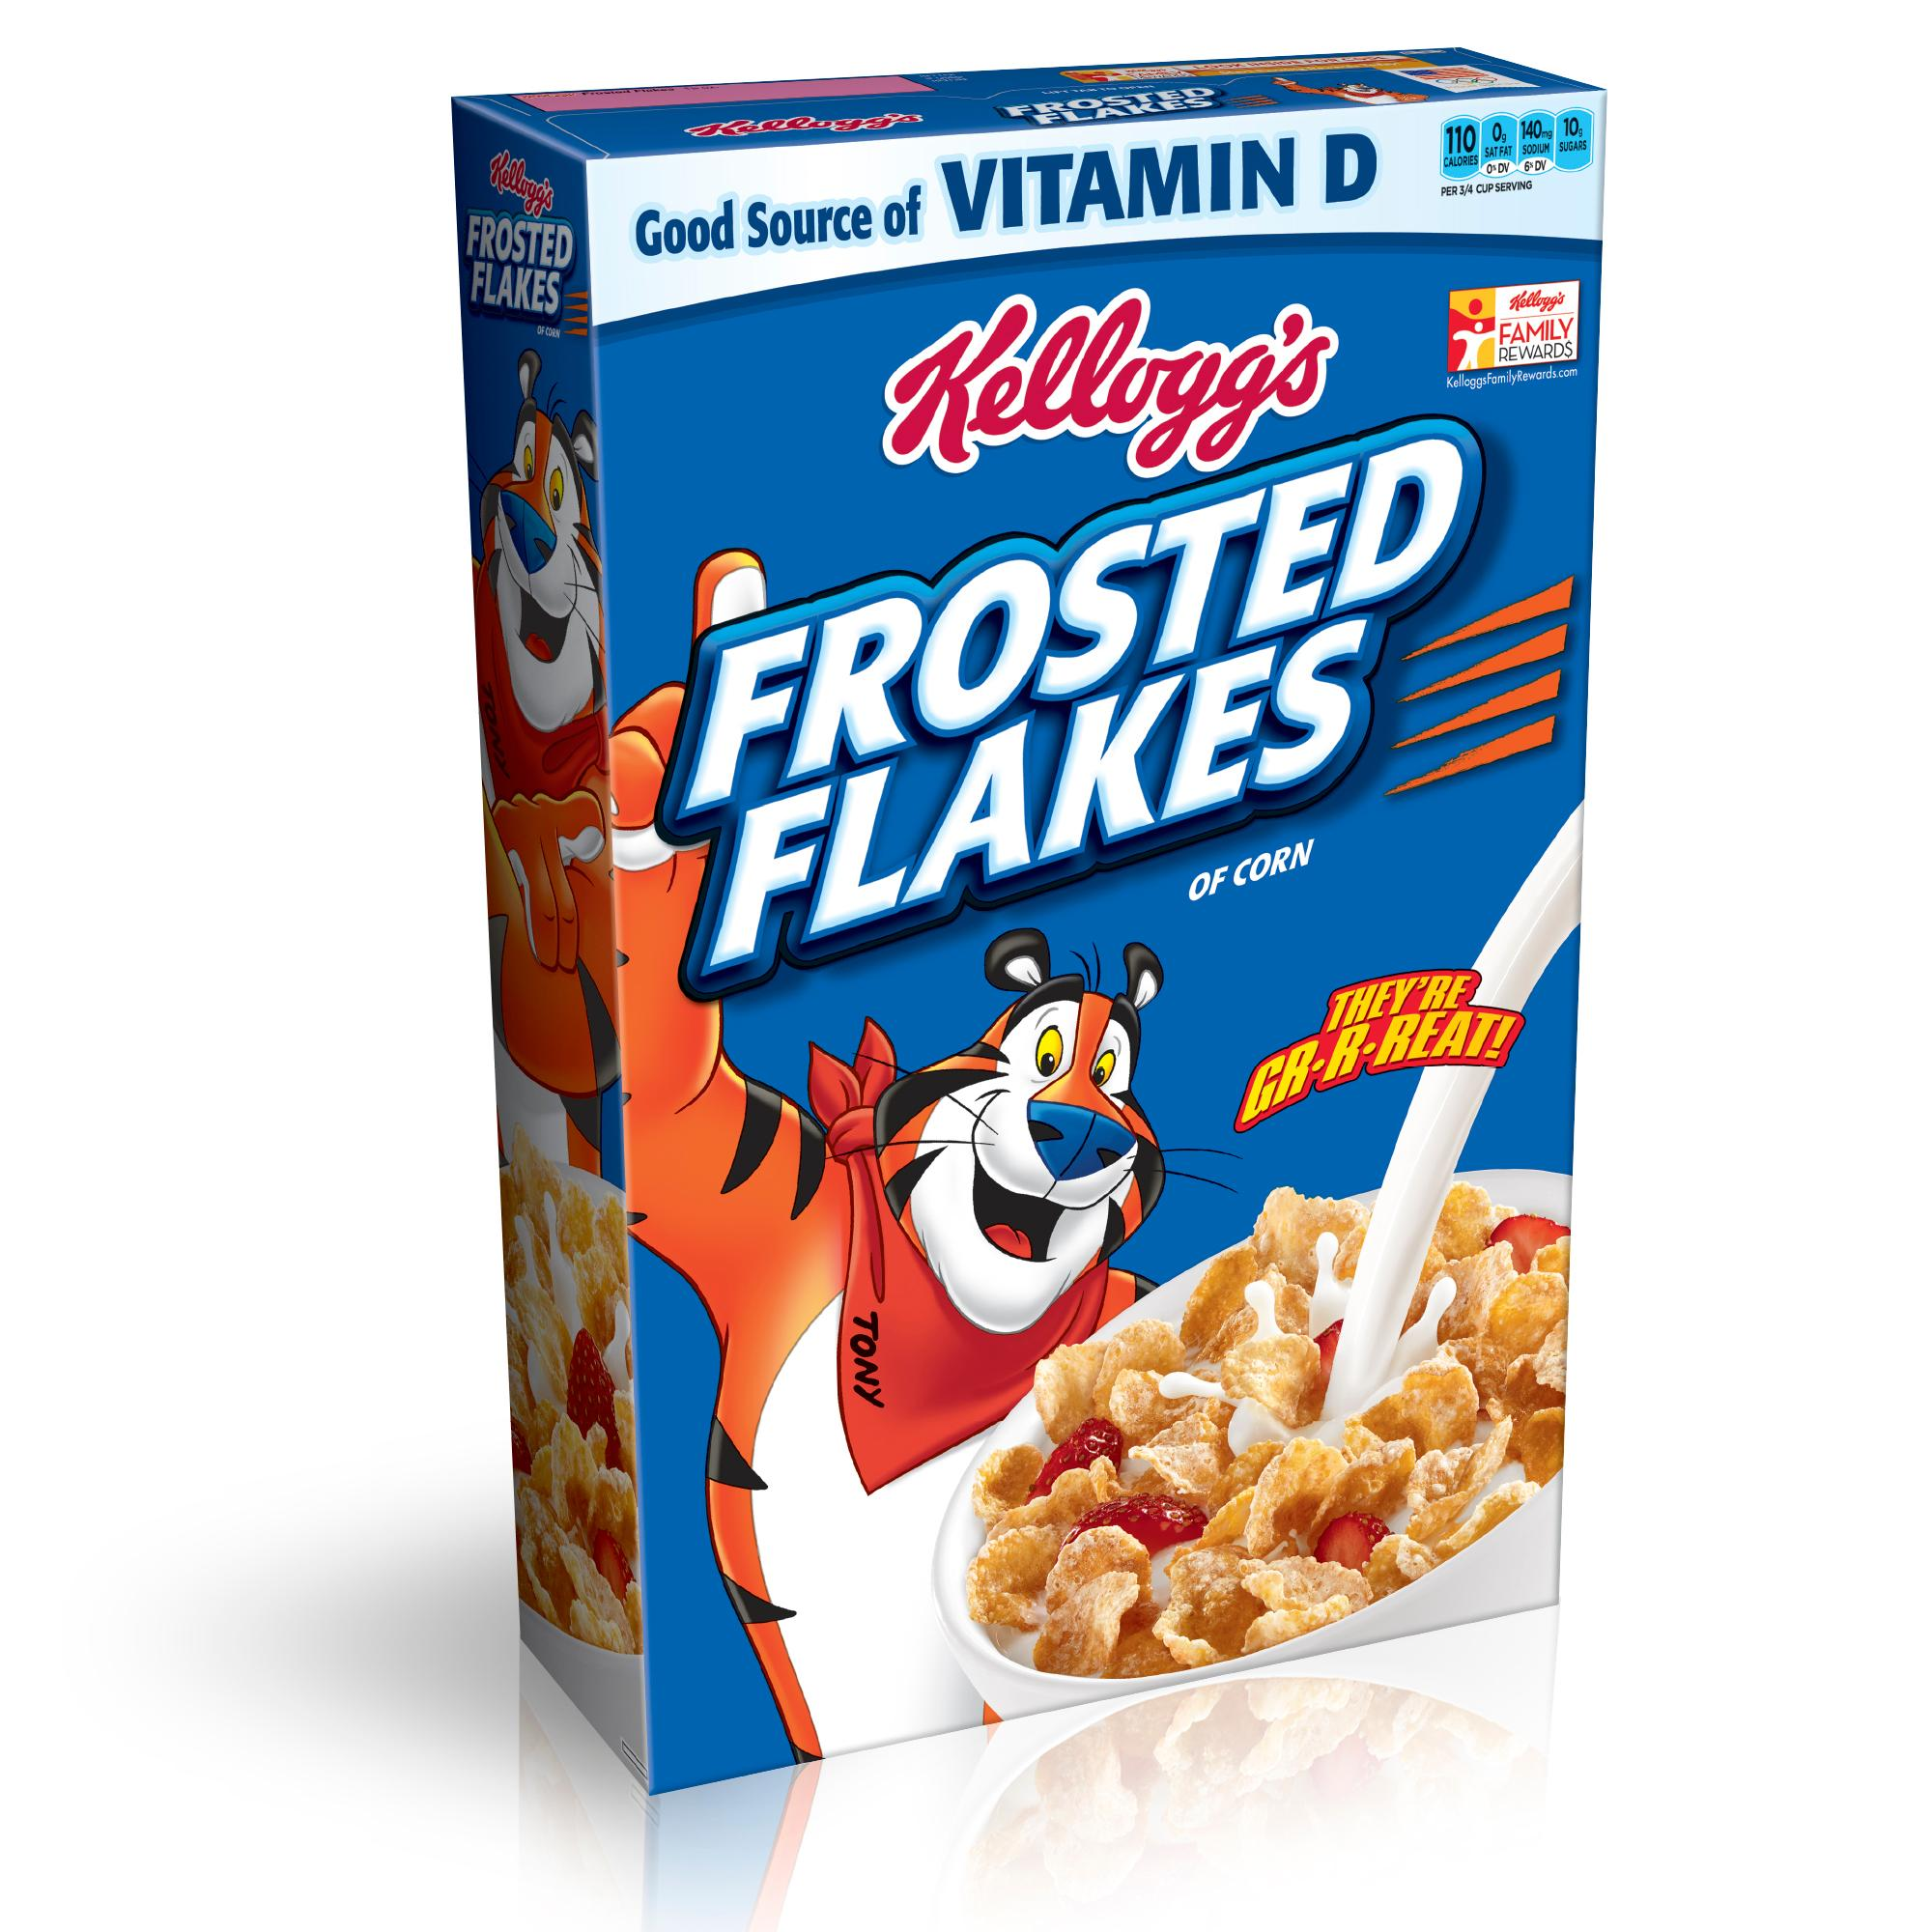 Flake clipart frosted flakes. Amazon com kellogg s